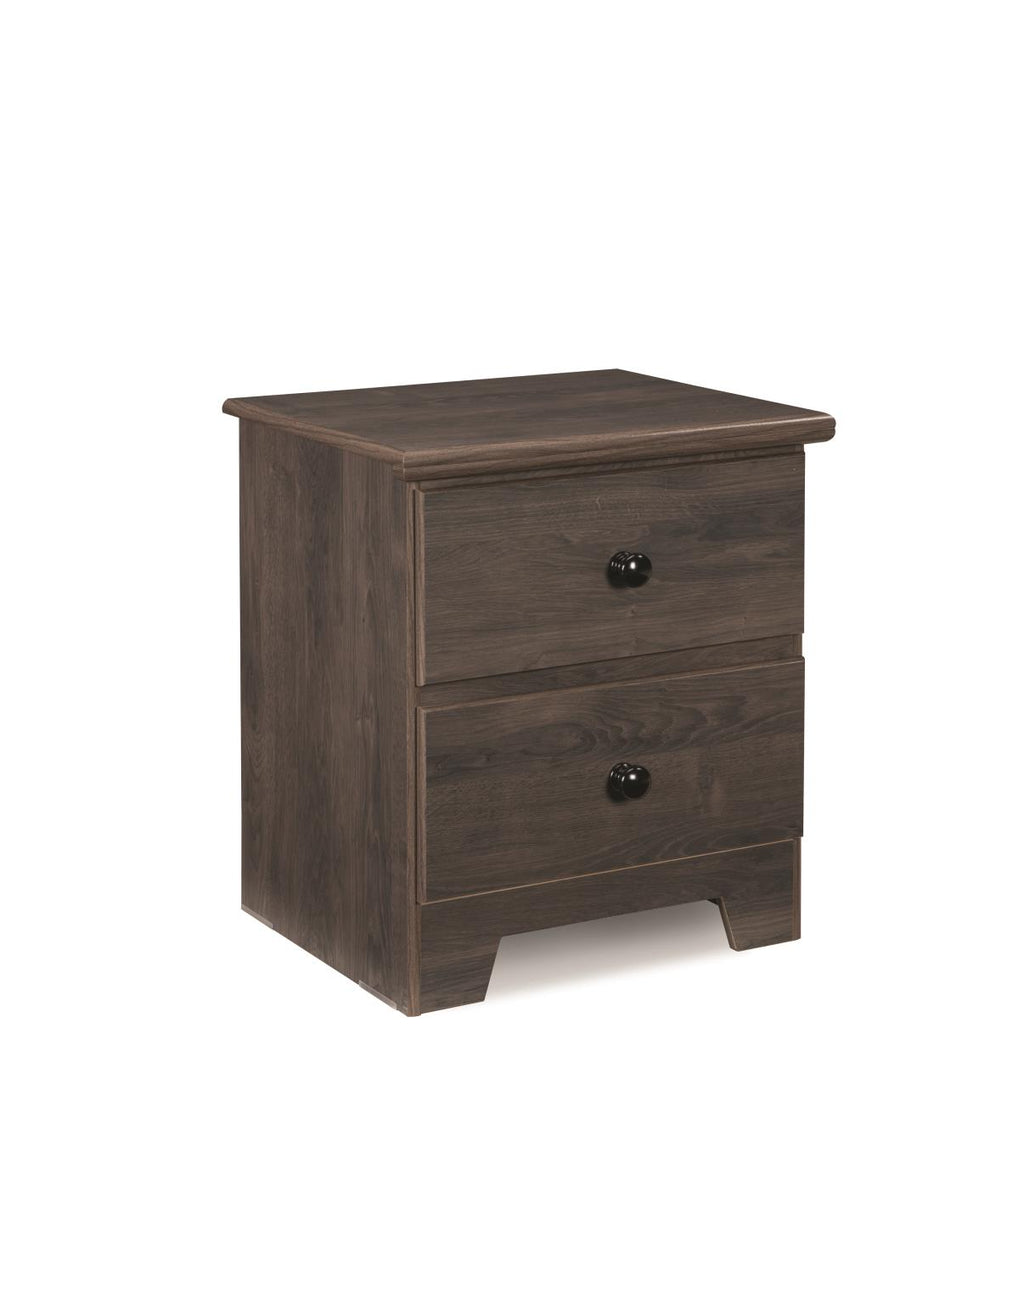 2 Drawer Night Stand - Shaker Collection By Langfurniture